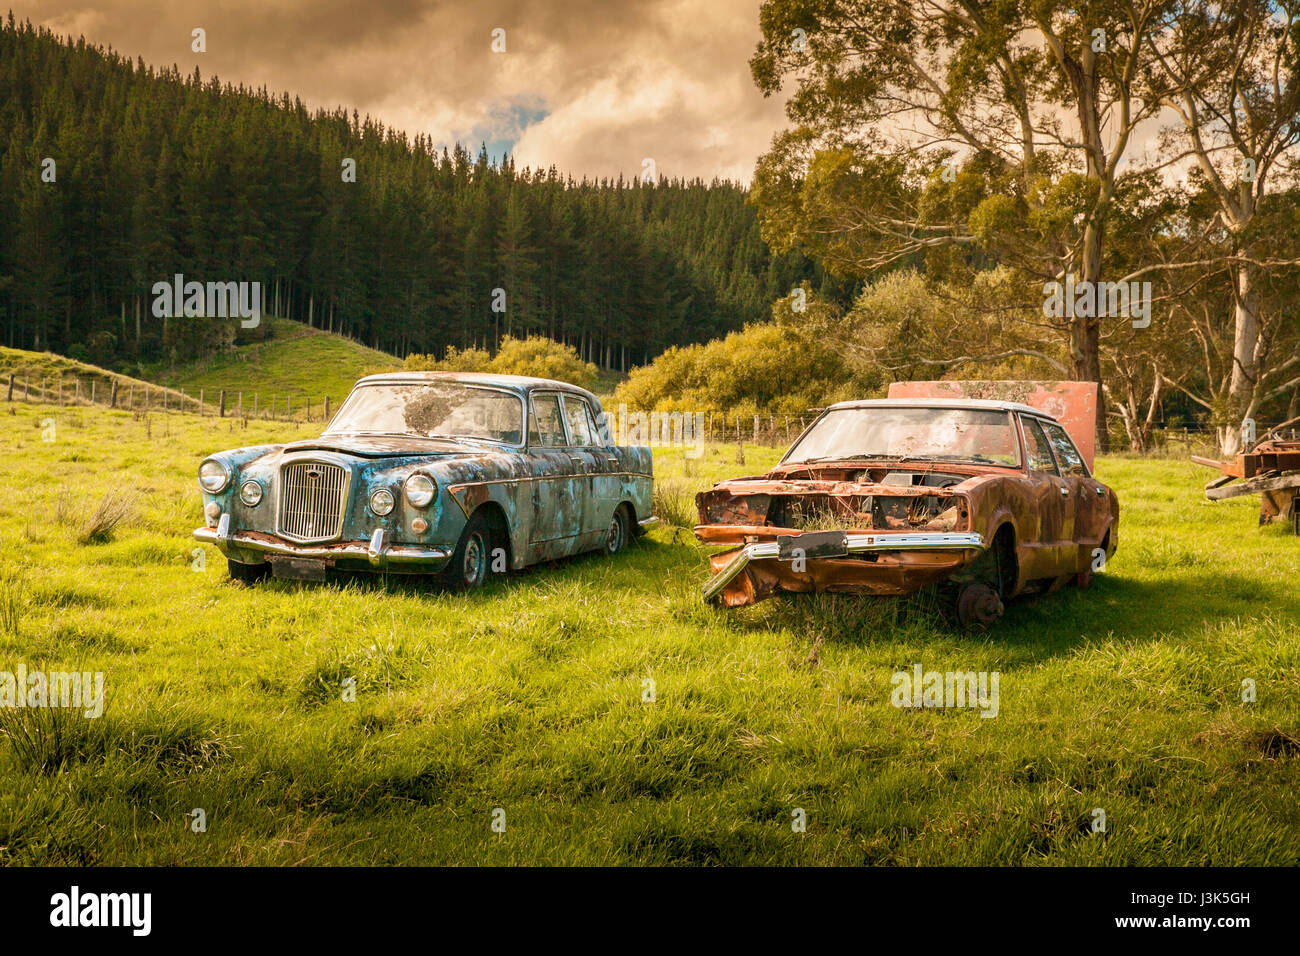 Two old cars overgrown with weeds and abandoned on farmland in a ...